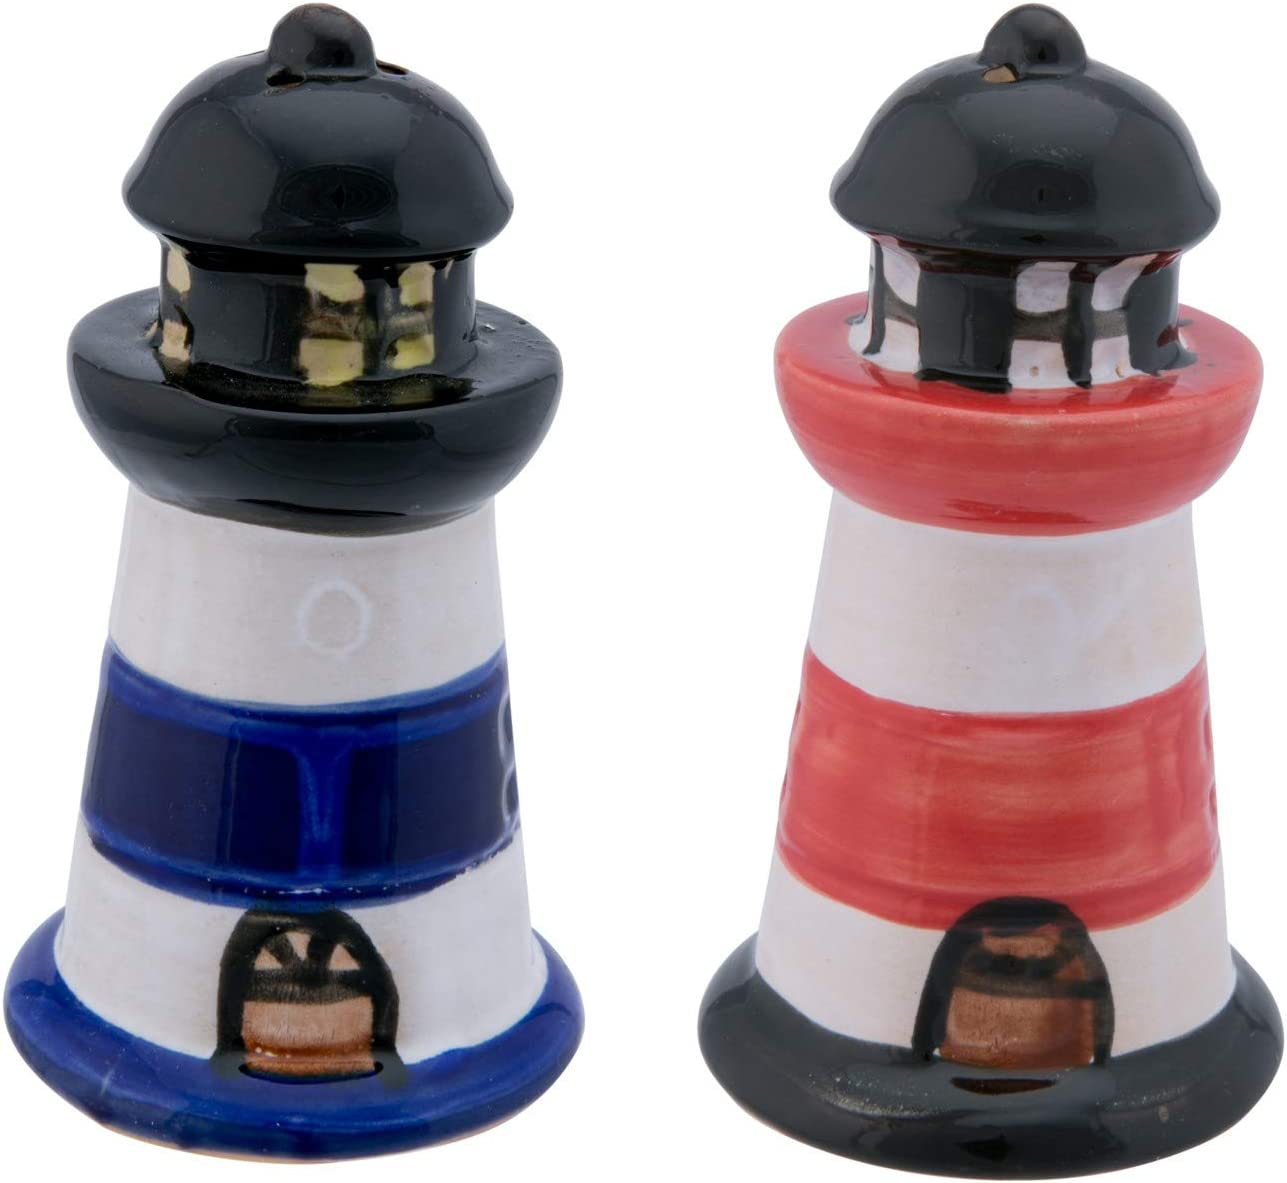 Beachcombers 03195 2-piece Lighthouse All items free shipping Shaker Salt Set At the price Pepper